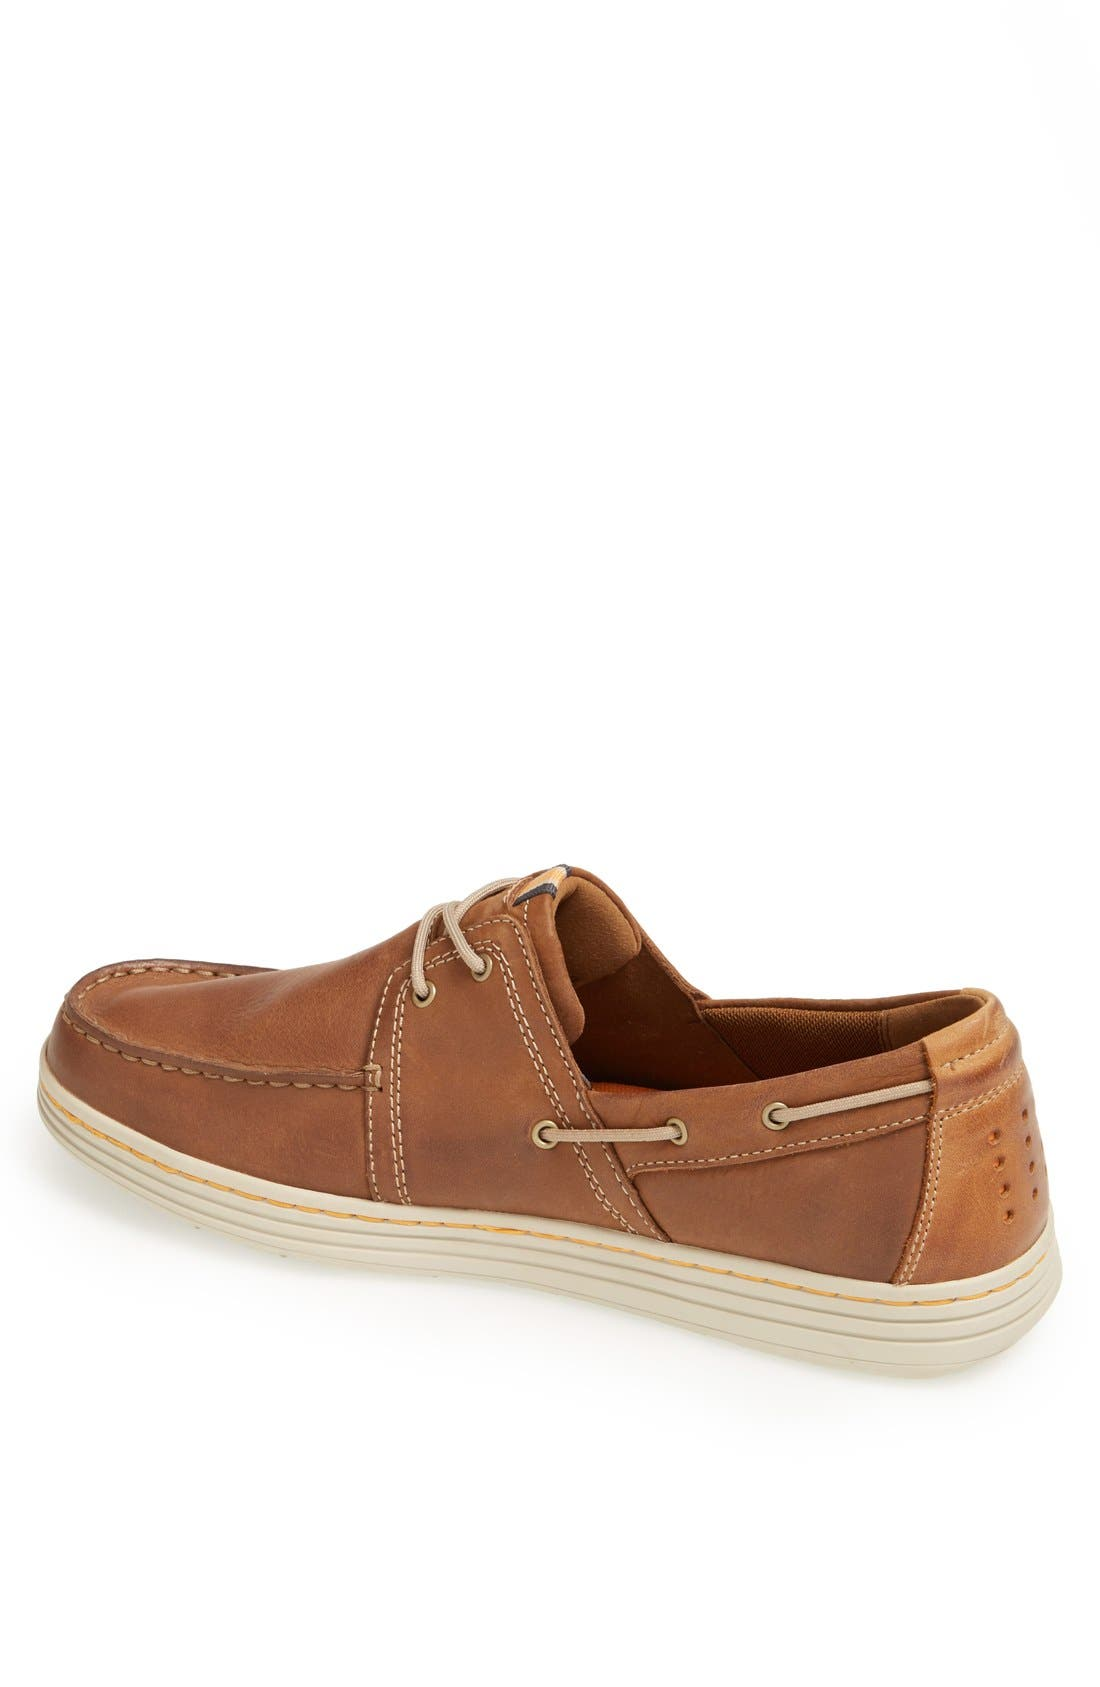 Alternate Image 2  - Dunham 'Chace' Boat Shoe